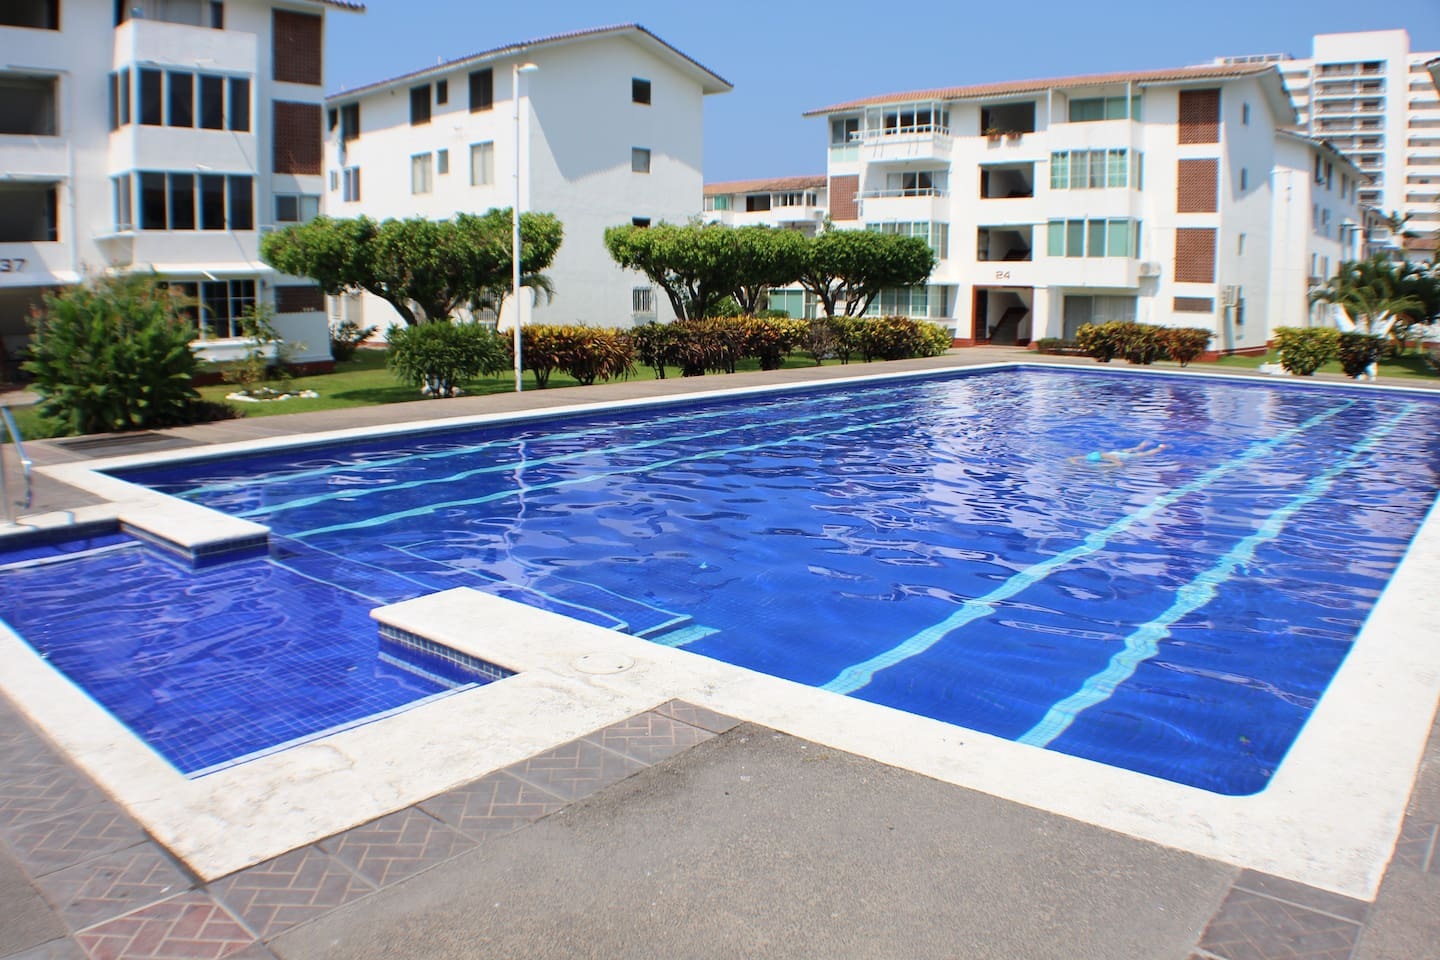 Huge common pool with shallow area for kids or adult relaxing area